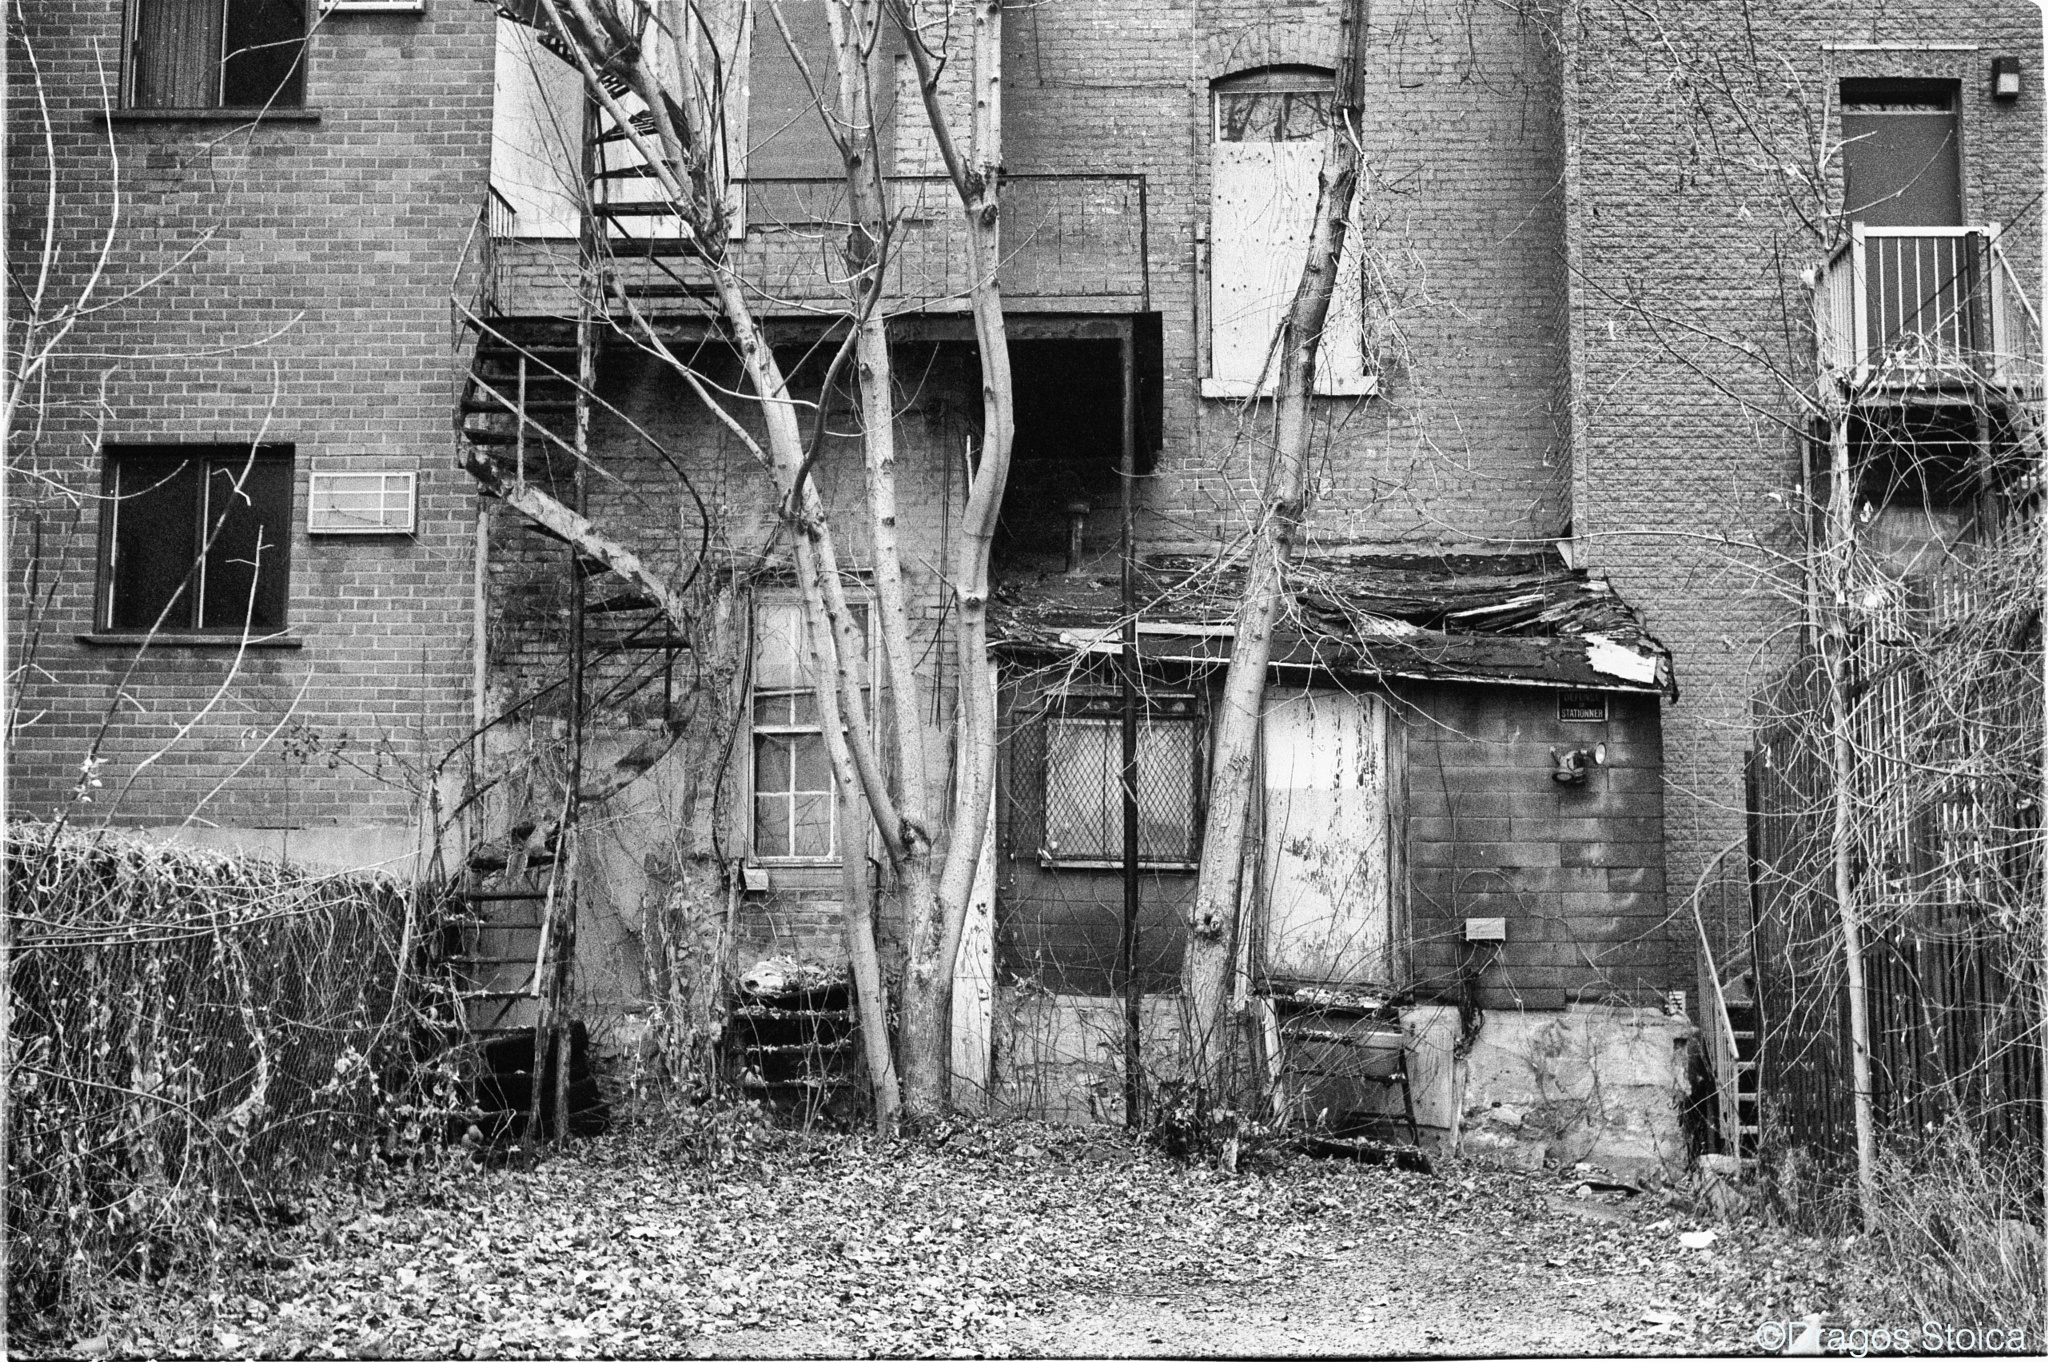 Deadpan No. 219. Before it Disappears. The Last House of the Old Griffintown  by dragos.stoic